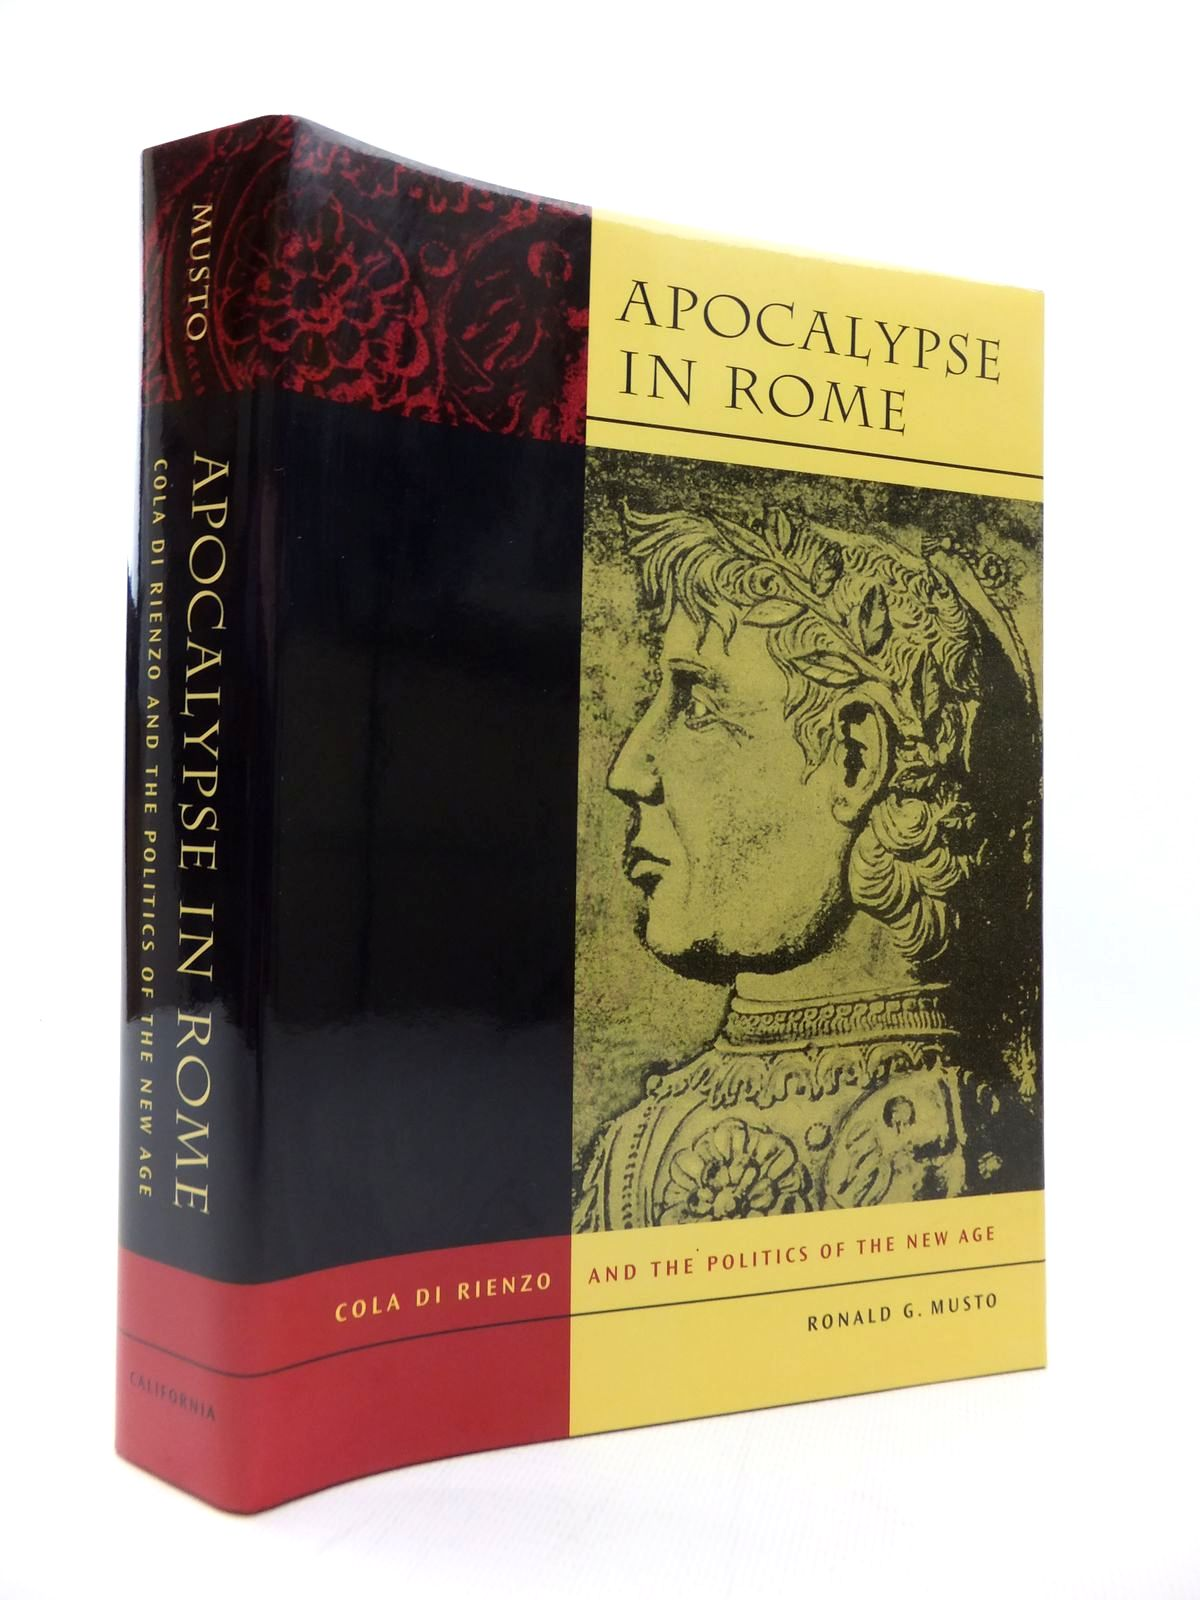 Photo of APOCALYPSE IN ROME: COLA DI RIENZO AND THE POLITICS OF THE NEW AGE written by Musto, Ronald G. published by University of California Press (STOCK CODE: 1814549)  for sale by Stella & Rose's Books